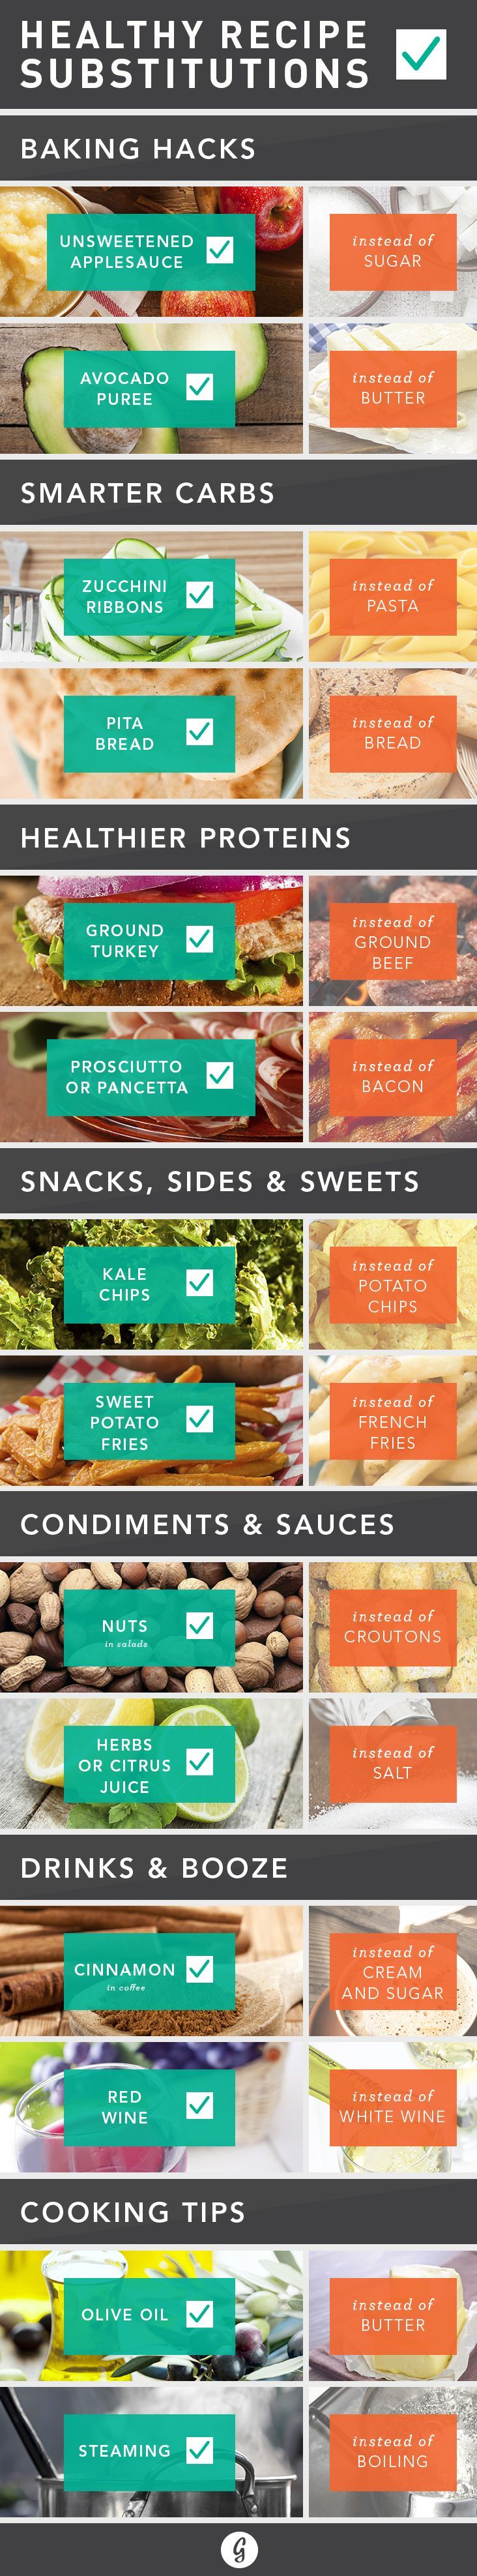 83 Healthier Recipe Substitutions — These easy cooking and baking swaps make just about any meal healthier, but without compromising taste! #baking #cooking #tips #healthy #greatist